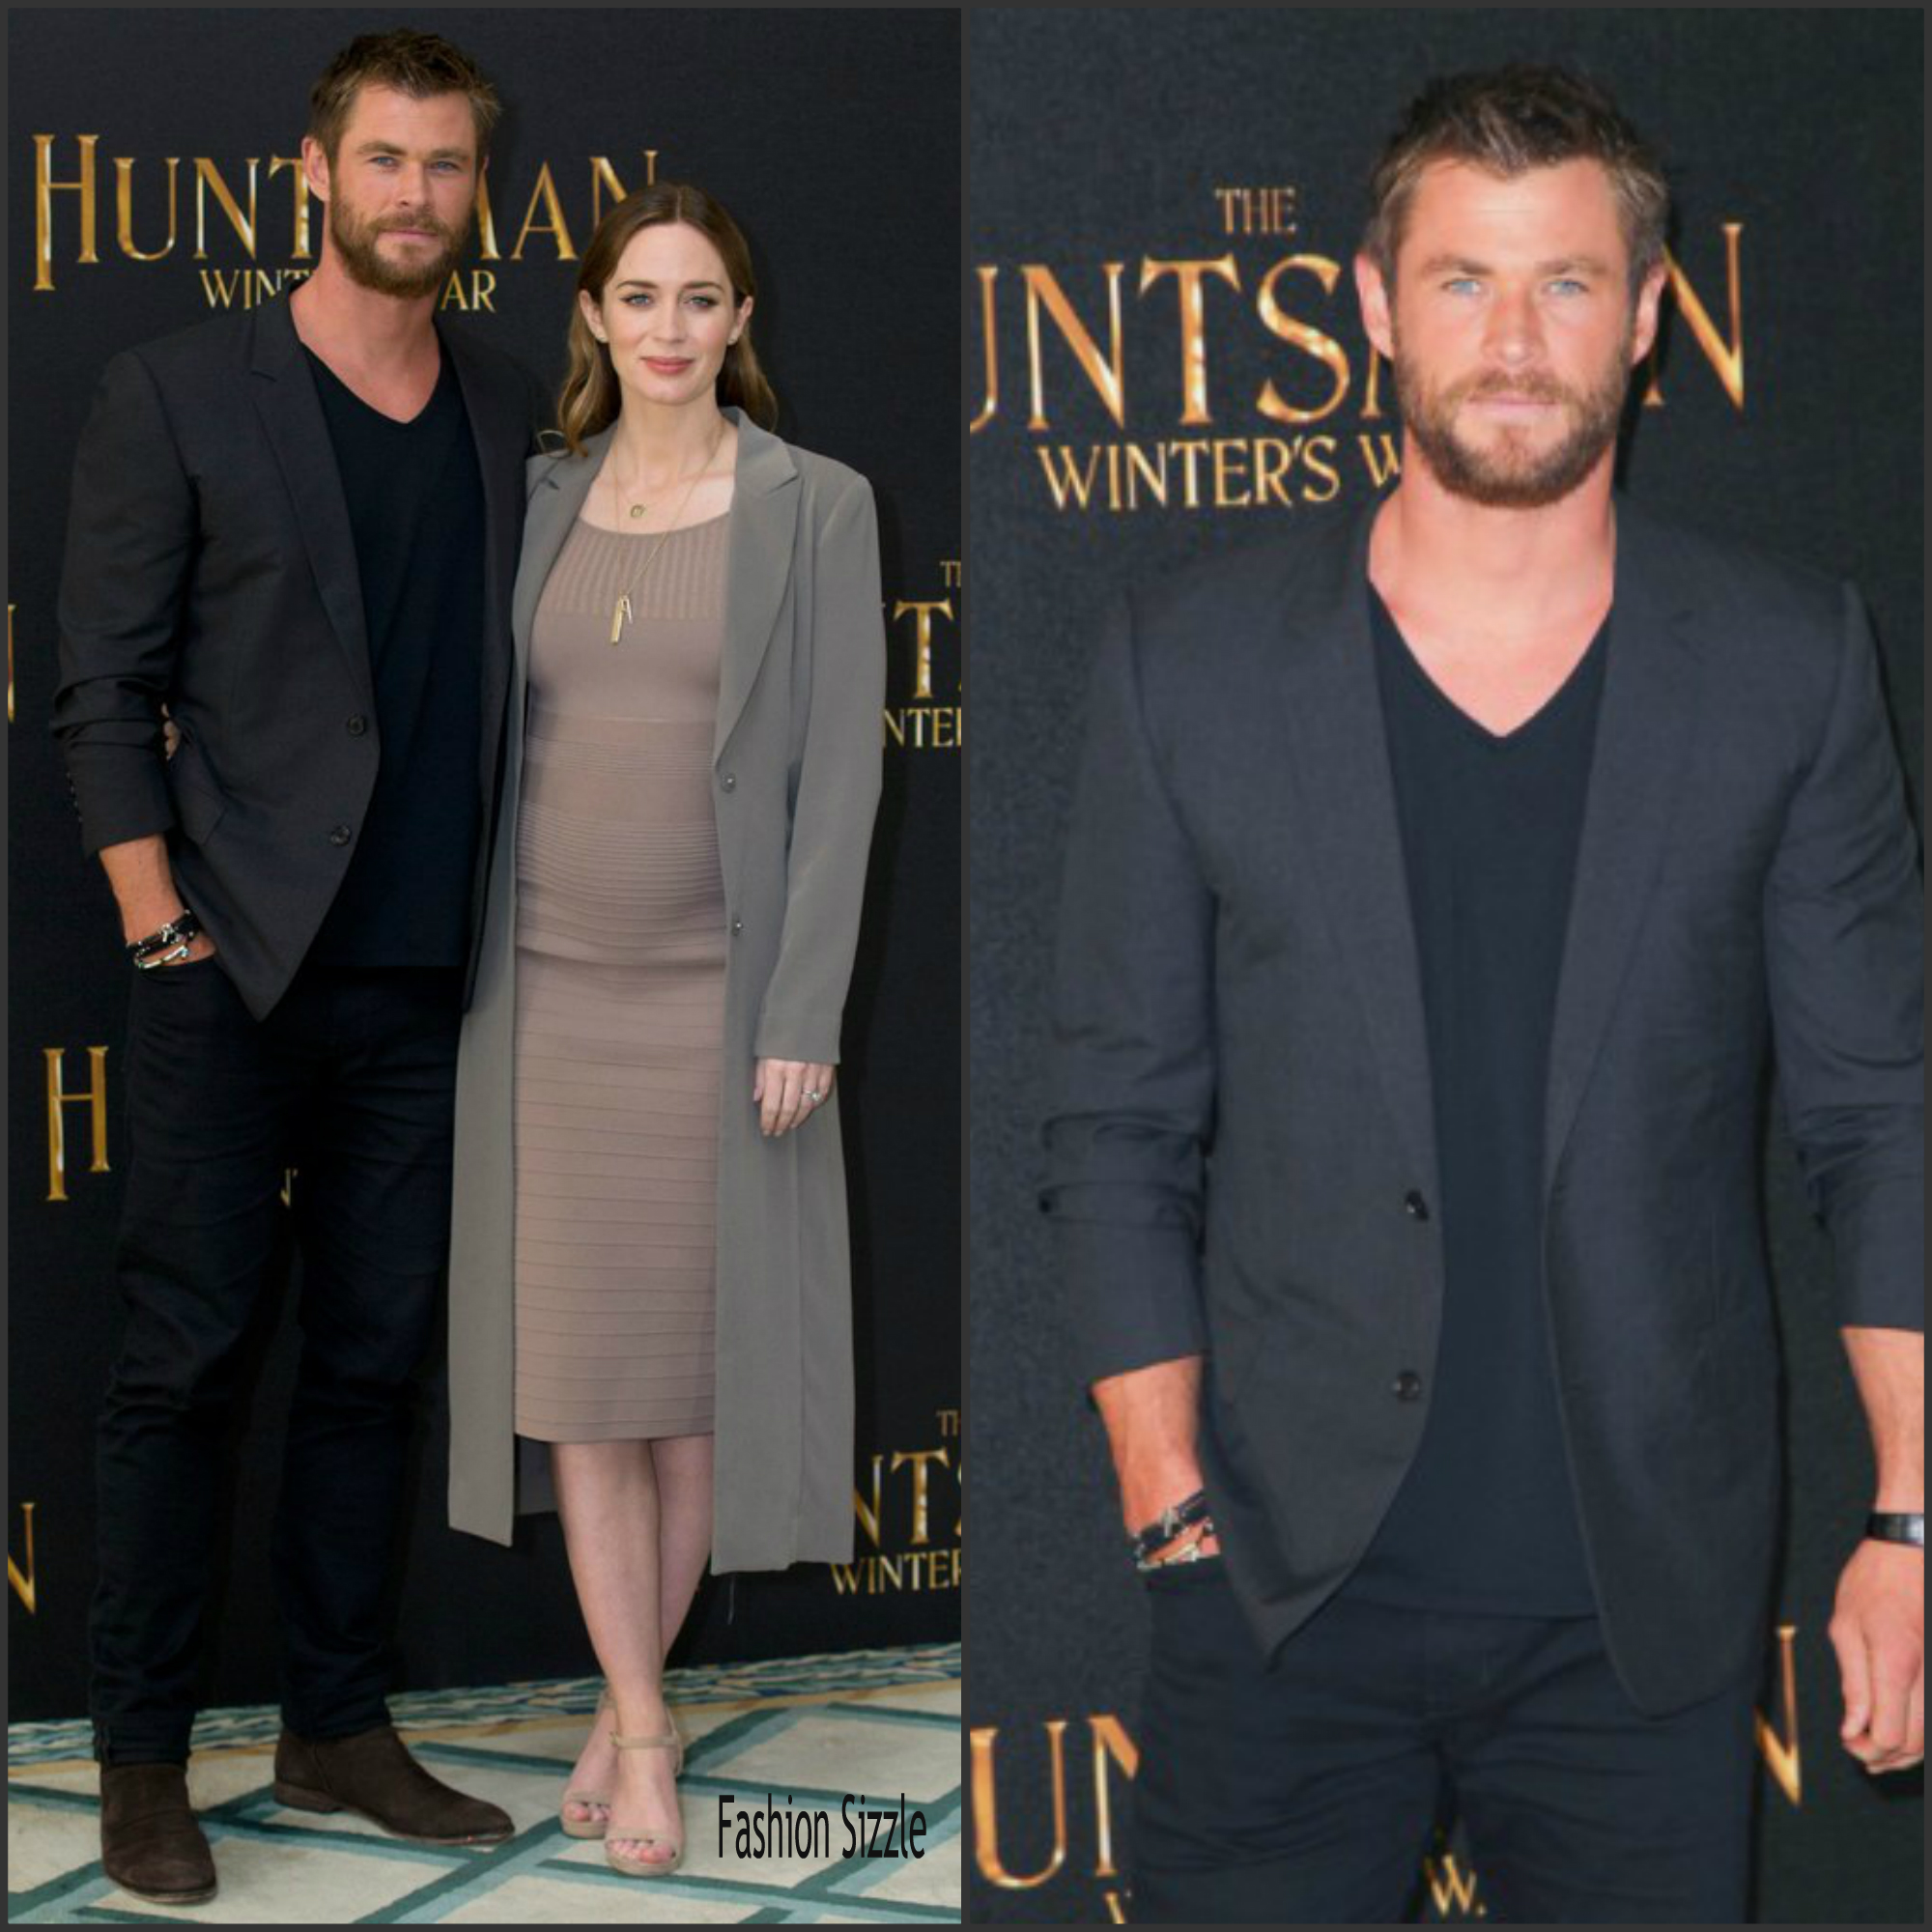 chris-hemsworth-emily-blunt-the-huntsman-winters-war-london-photocall